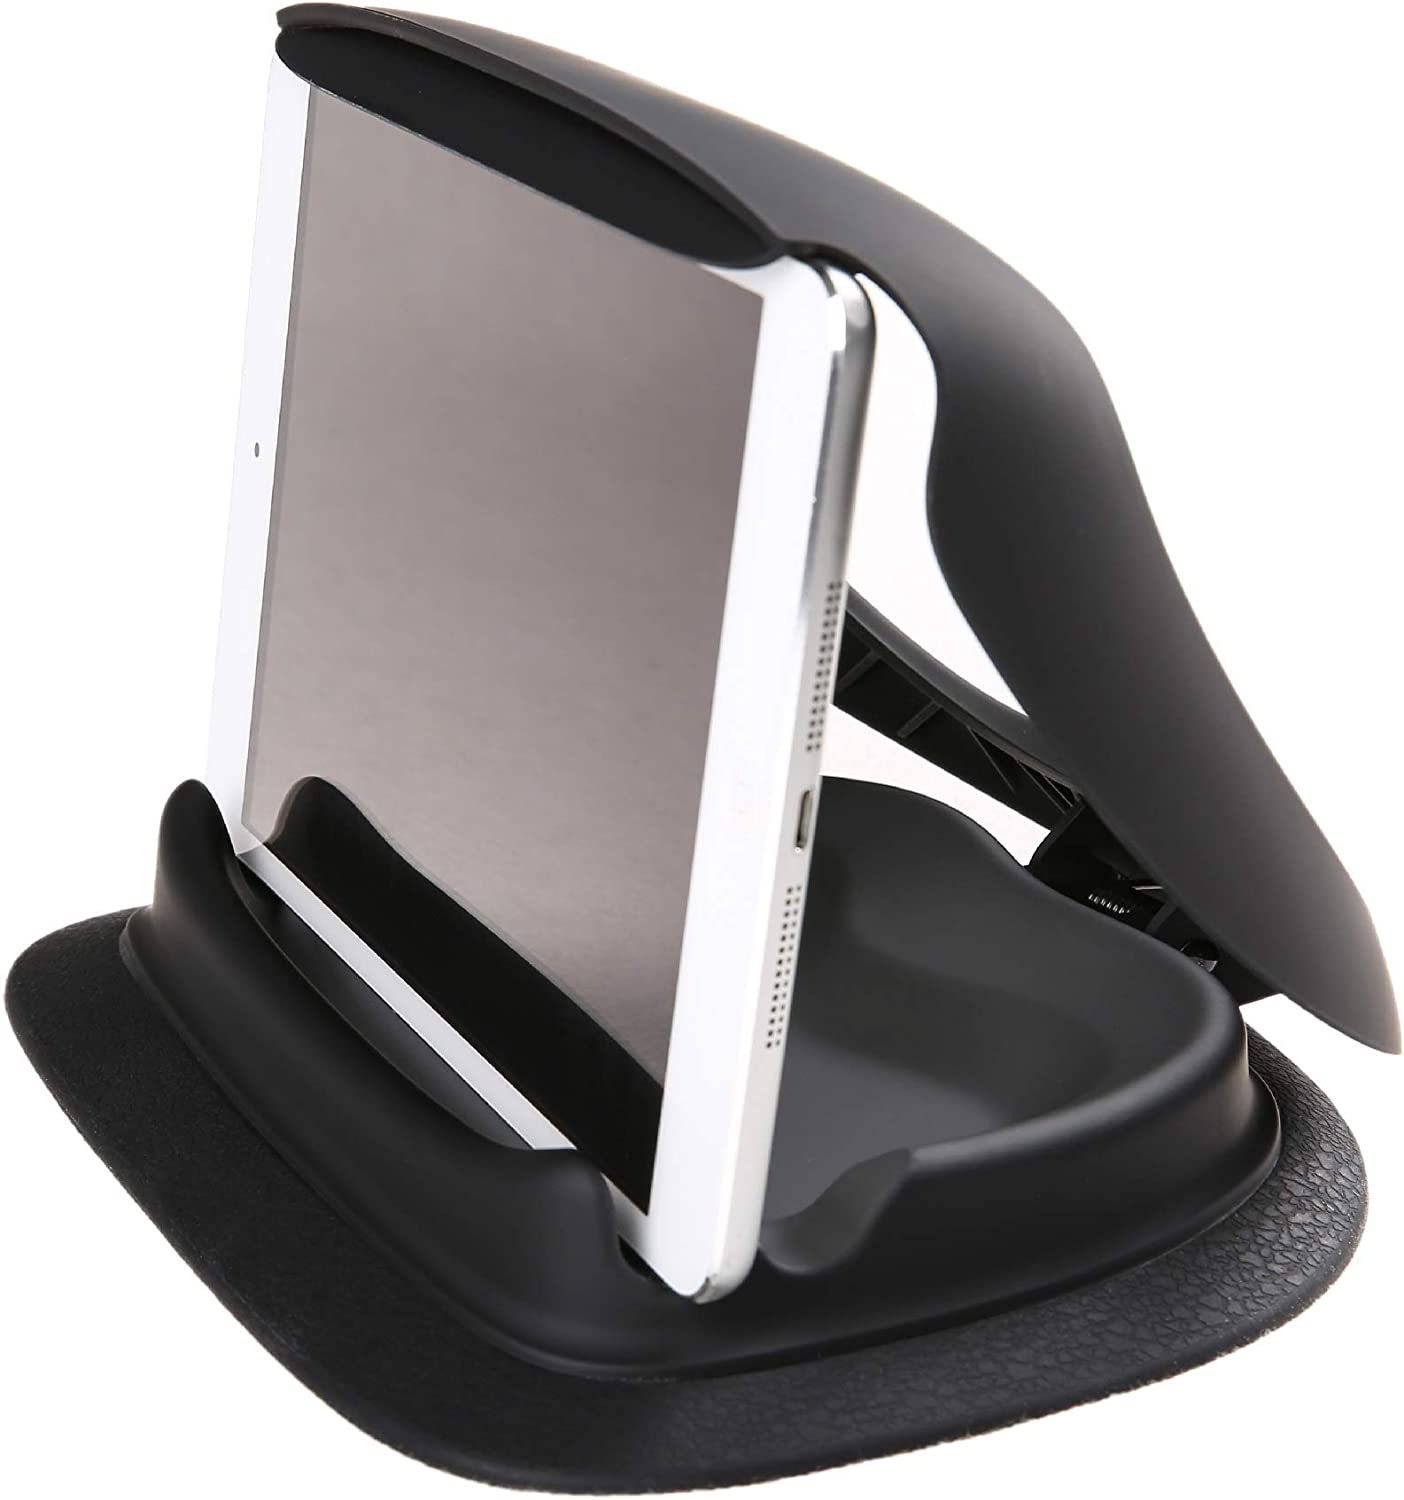 Navitech in Car Dashboard Friction Mount Compatible with The New Apple iPad (3rd Gen 2012) & The New iPad 4th Generation with Retina Display